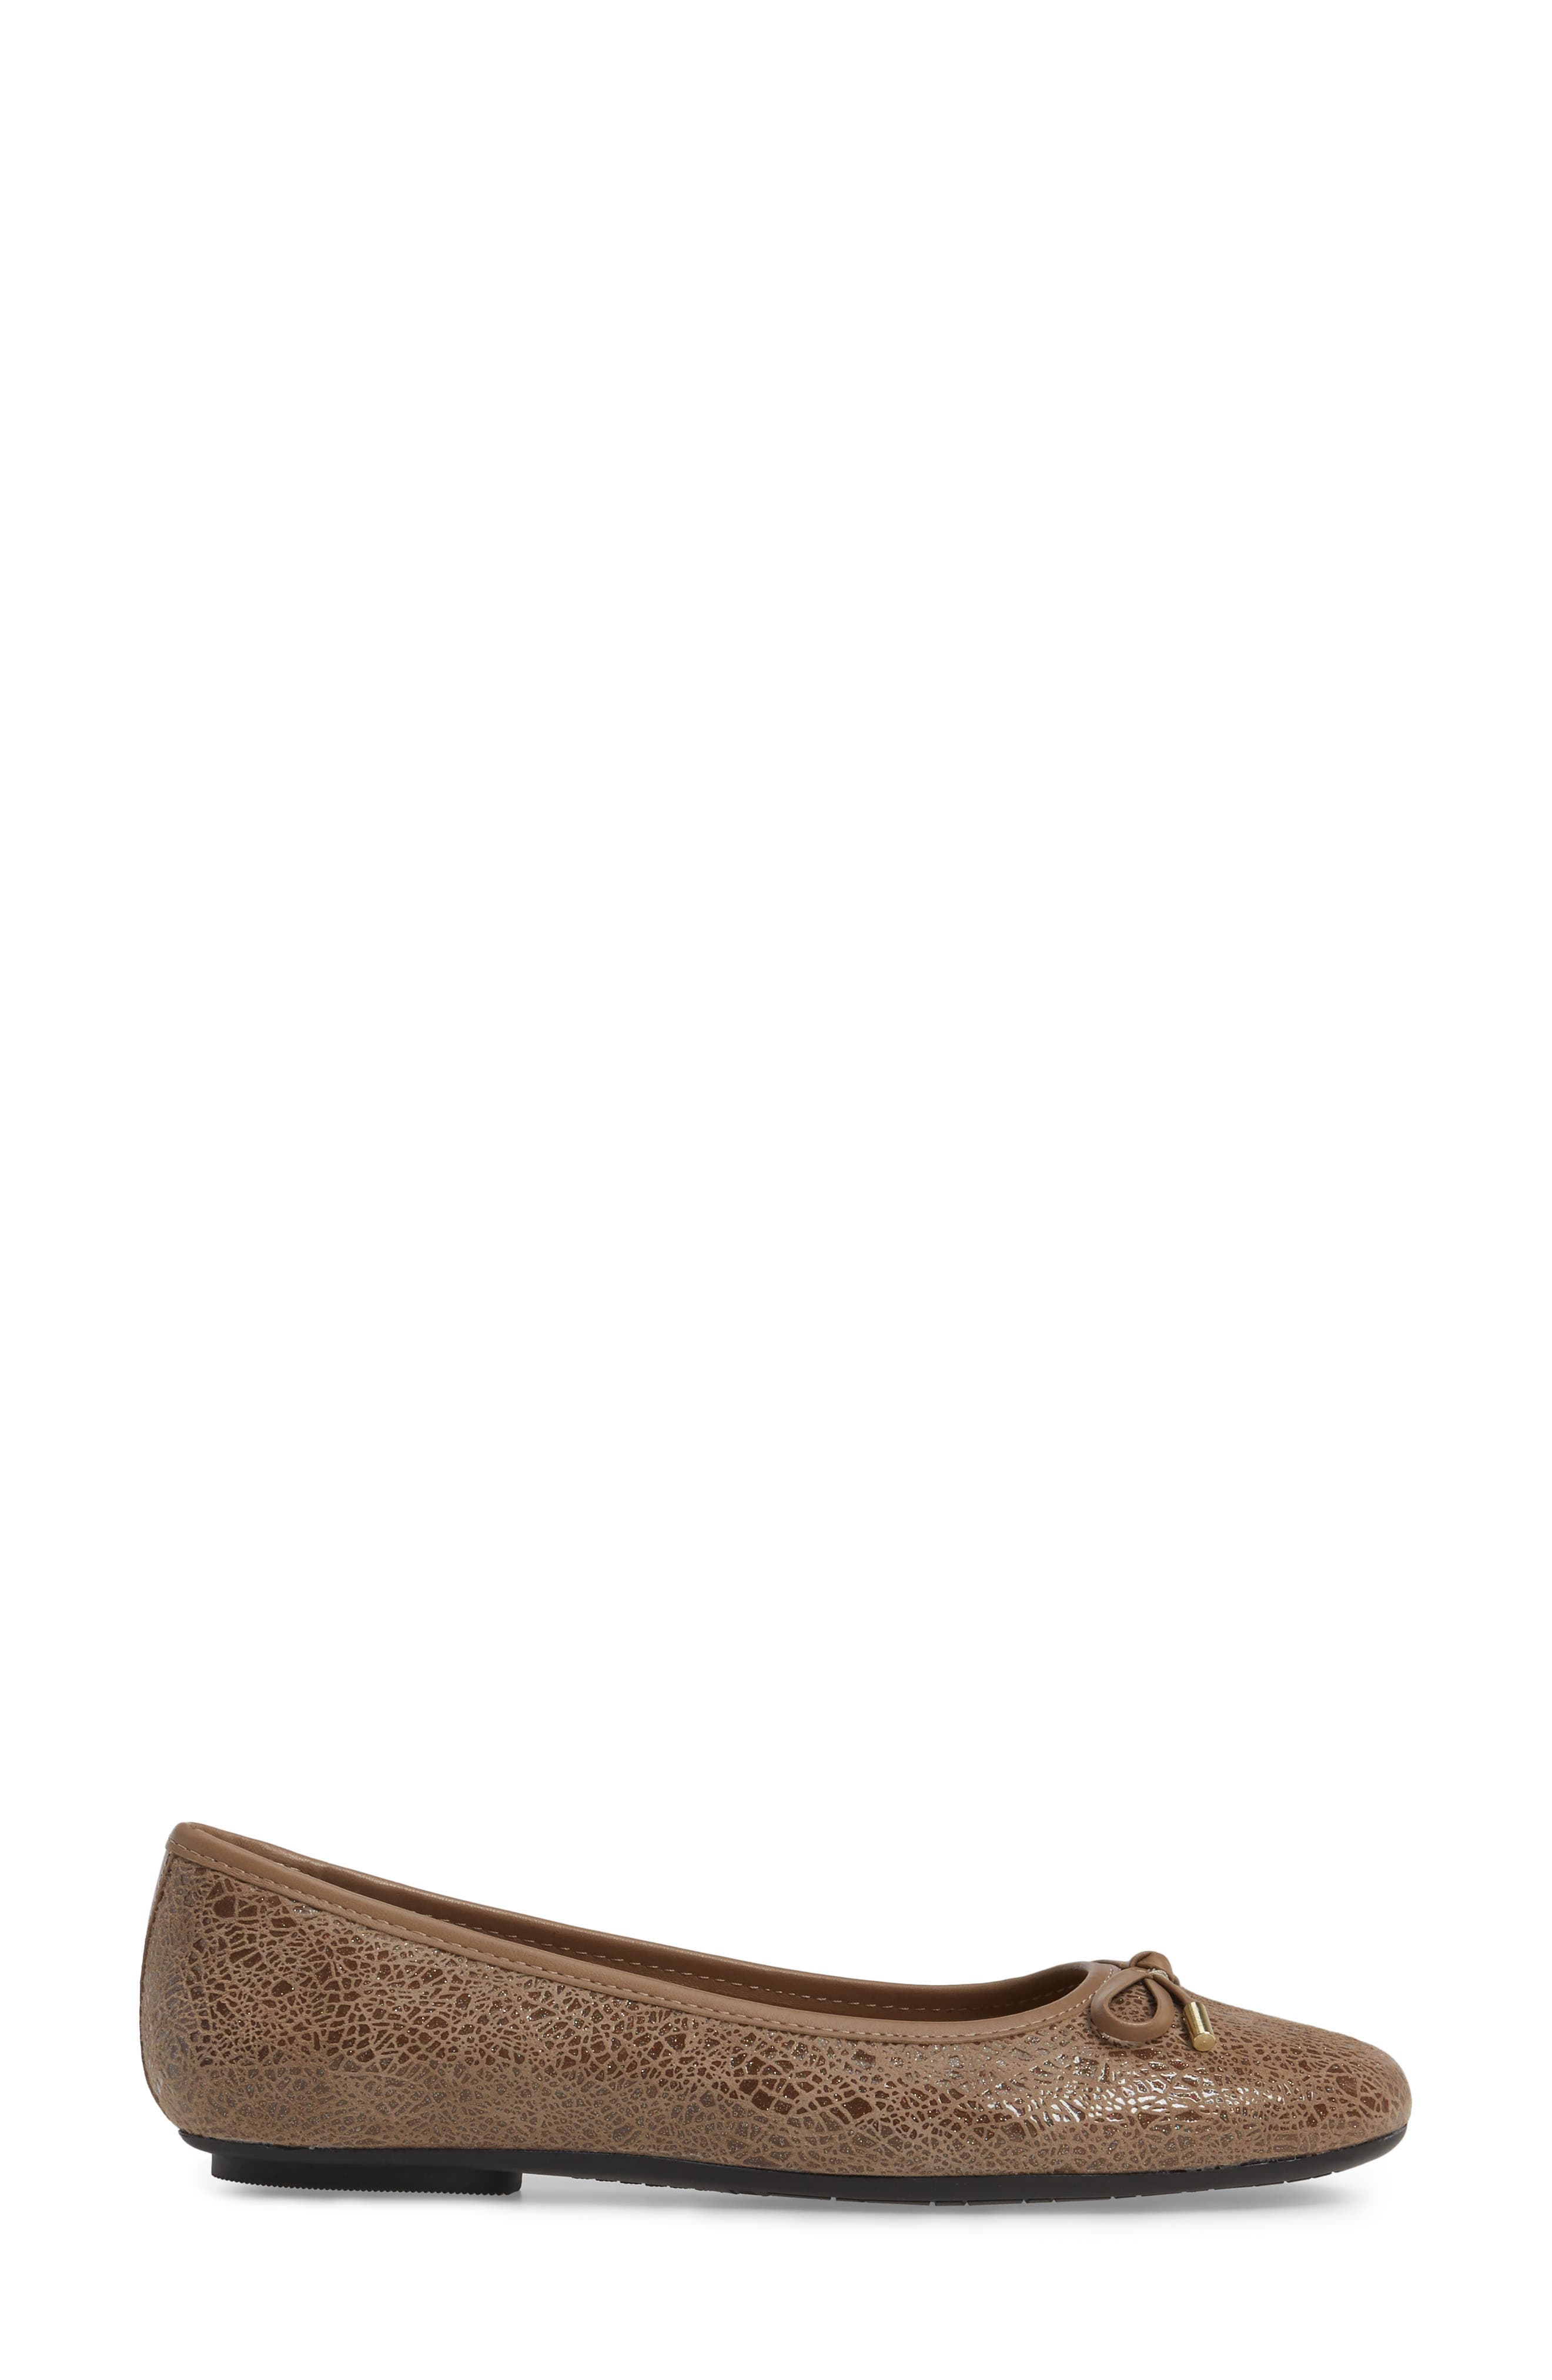 'Signy' Ballet Flat,                             Alternate thumbnail 4, color,                             Taupe Print Leather